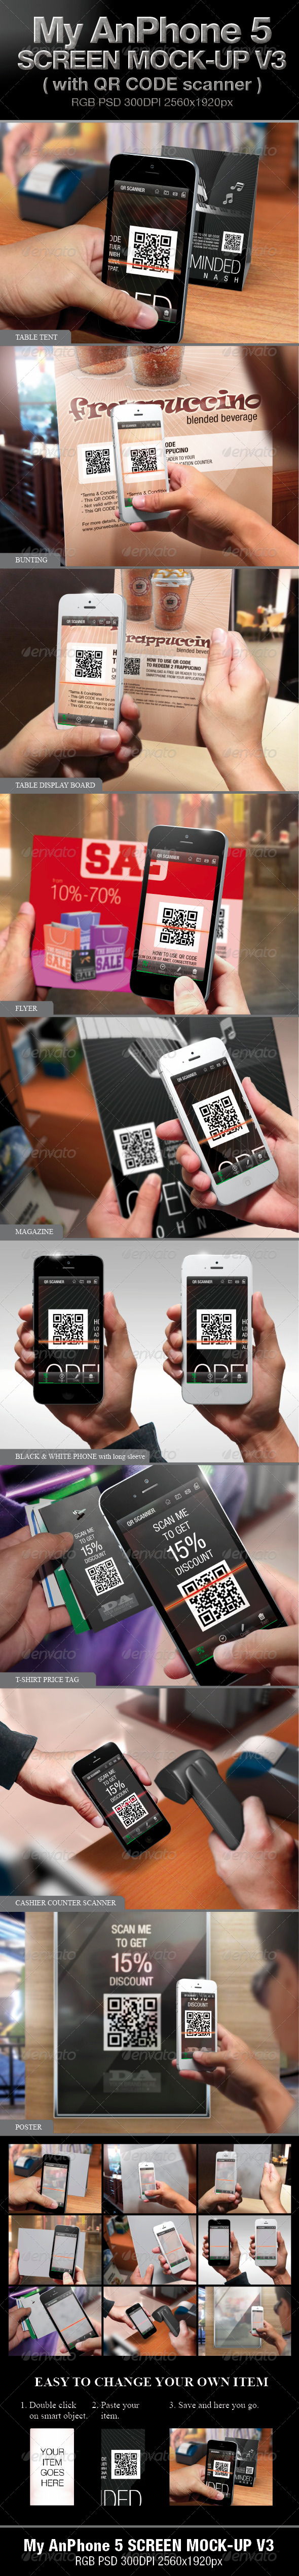 GraphicRiver My AnPhone 5 Screen Mock-up V3 4118937